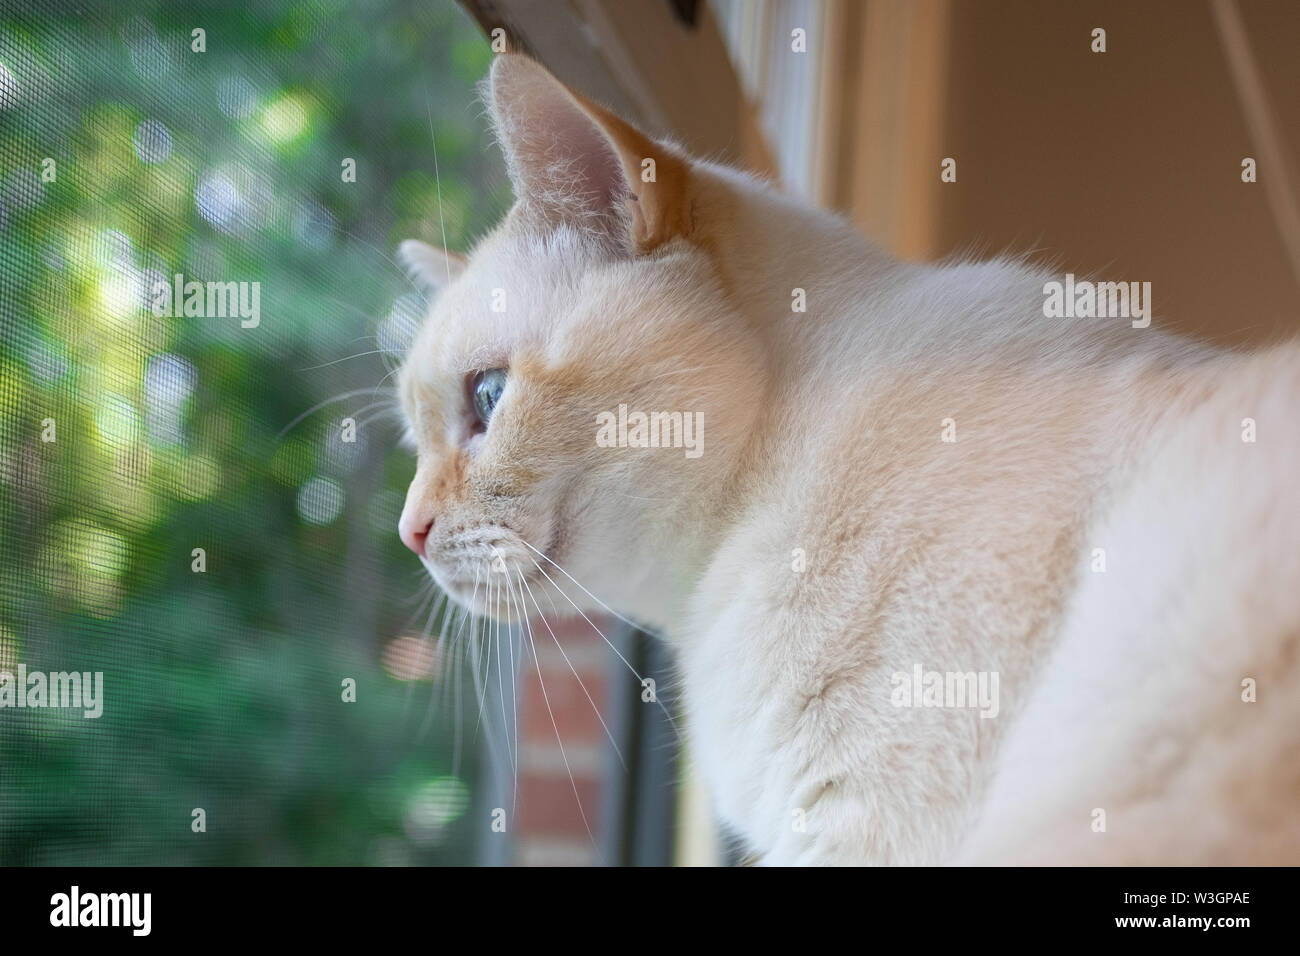 A white flamepoint Siamese cat with blue eyes looking out of a window, with a lush green background. - Stock Image